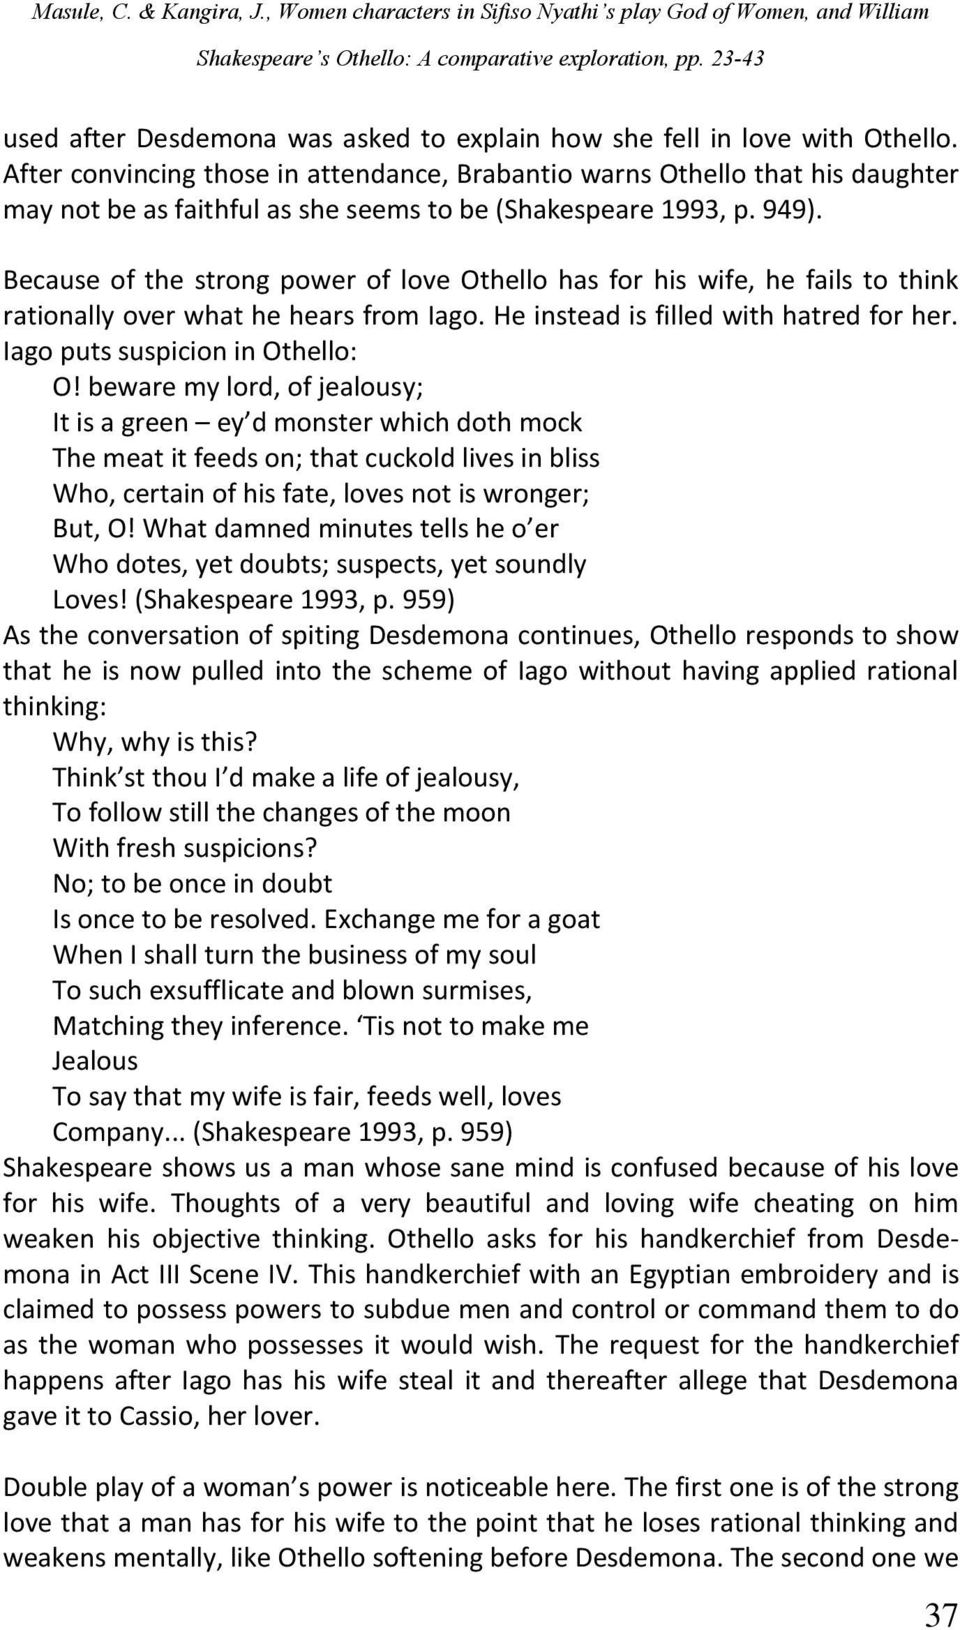 othello essay on his jealousy custom paper help othello essay on his jealousy